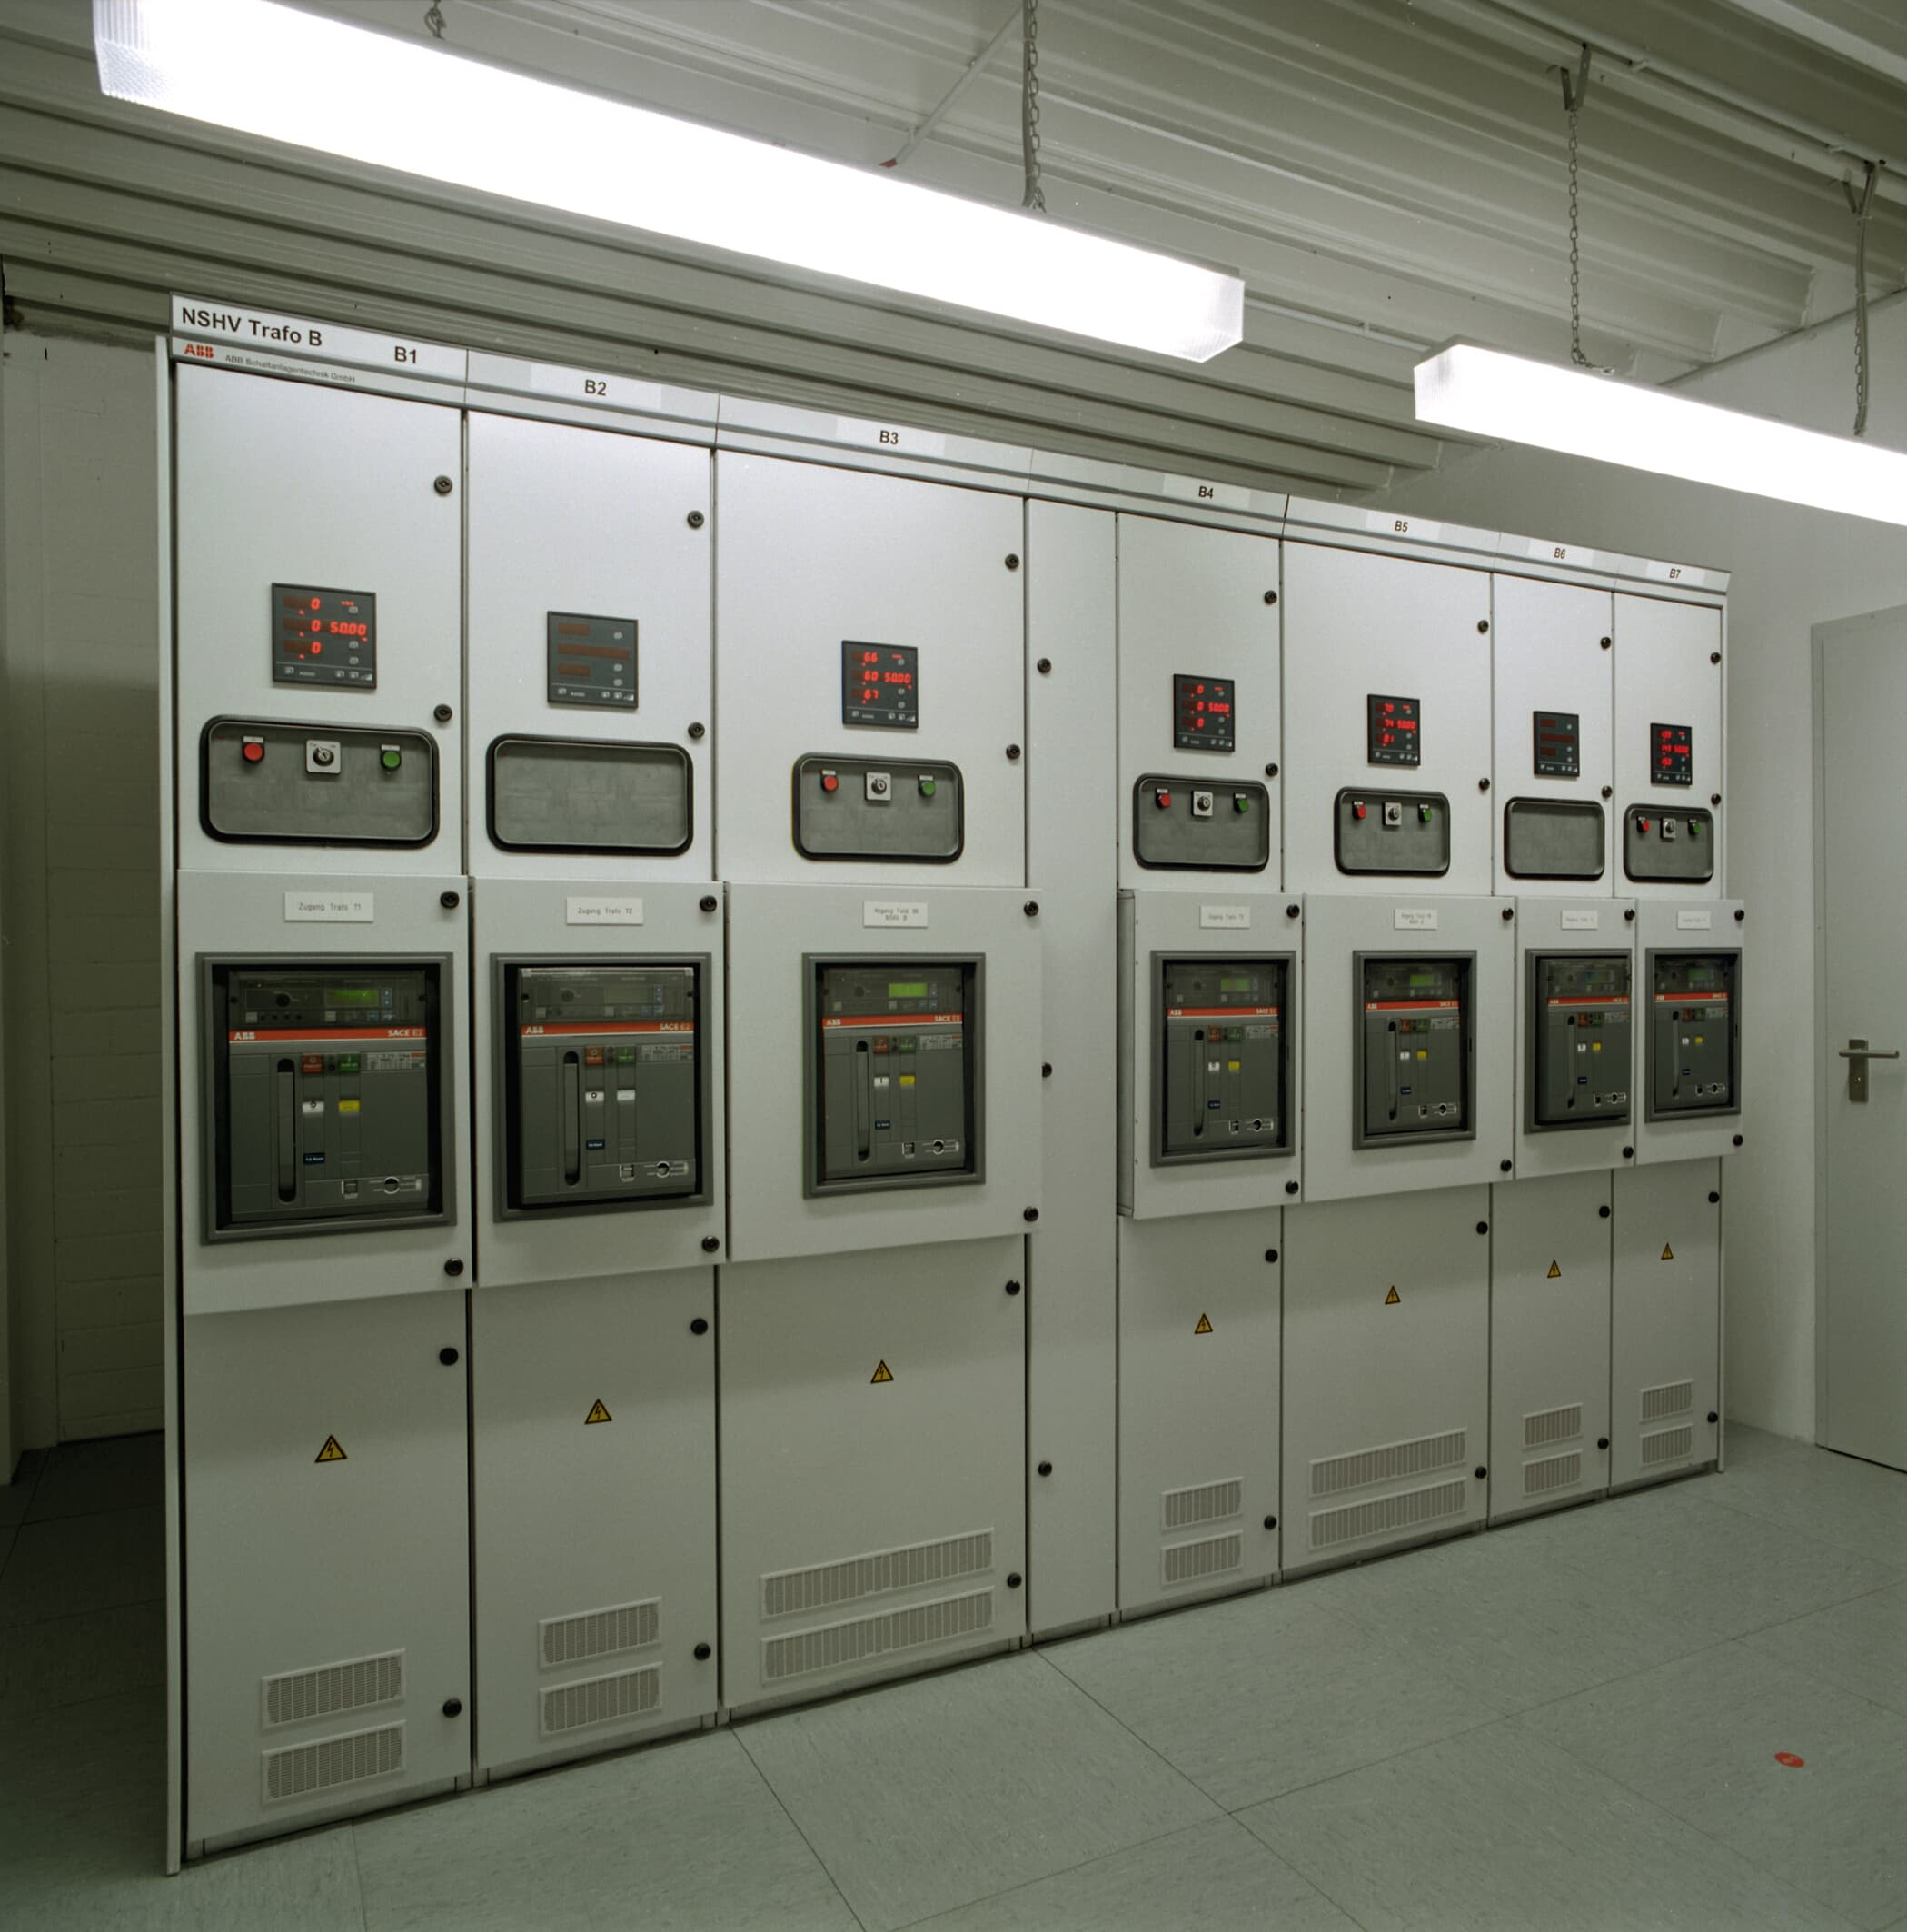 Switchgear<br>Image No.: 010041_7